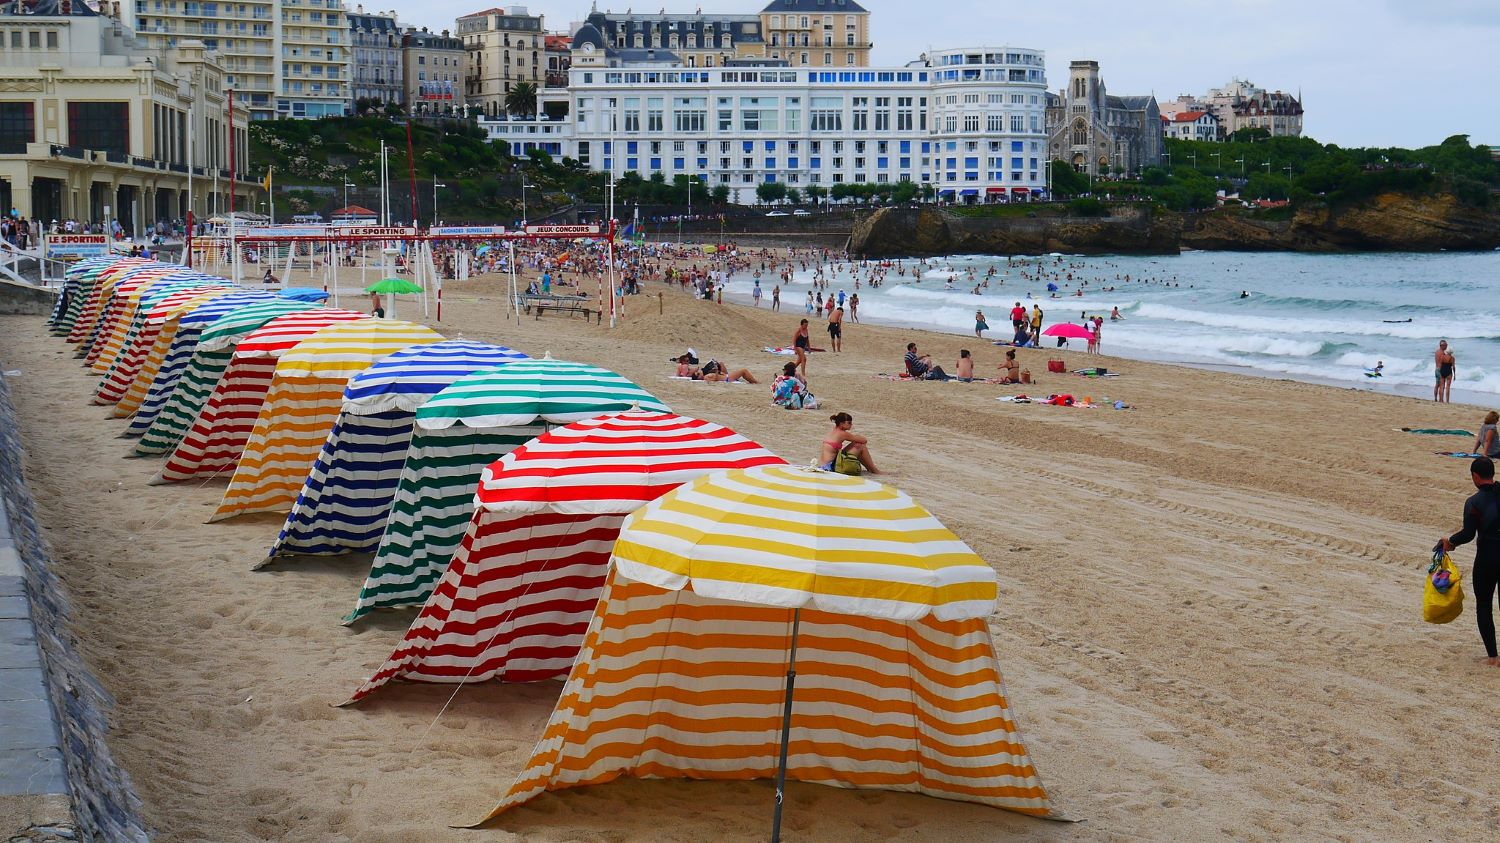 Grande Plage de Biarritz, France.  Source